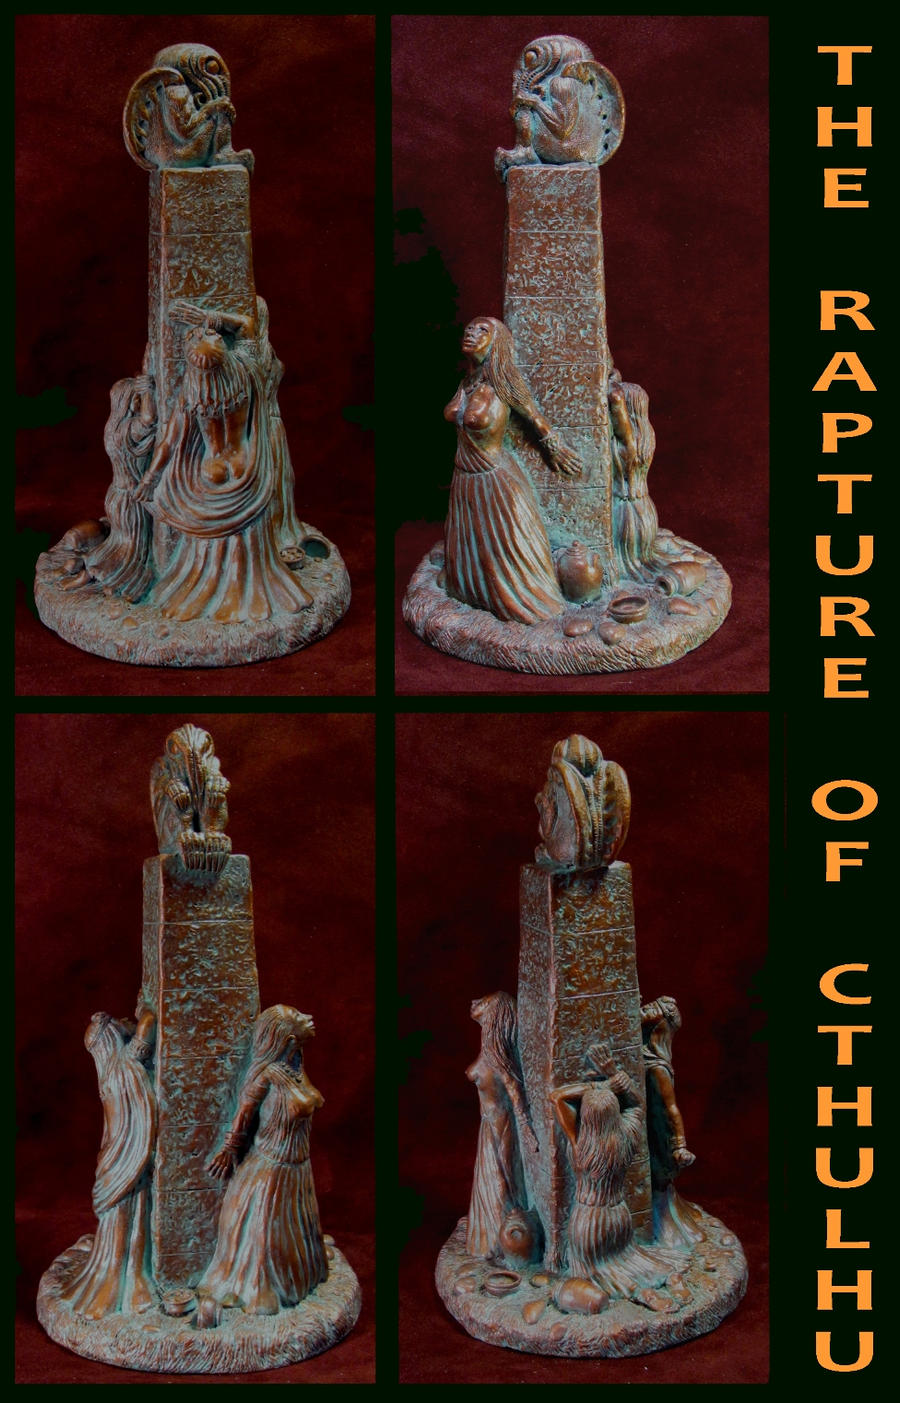 The Rapture of Cthulhu